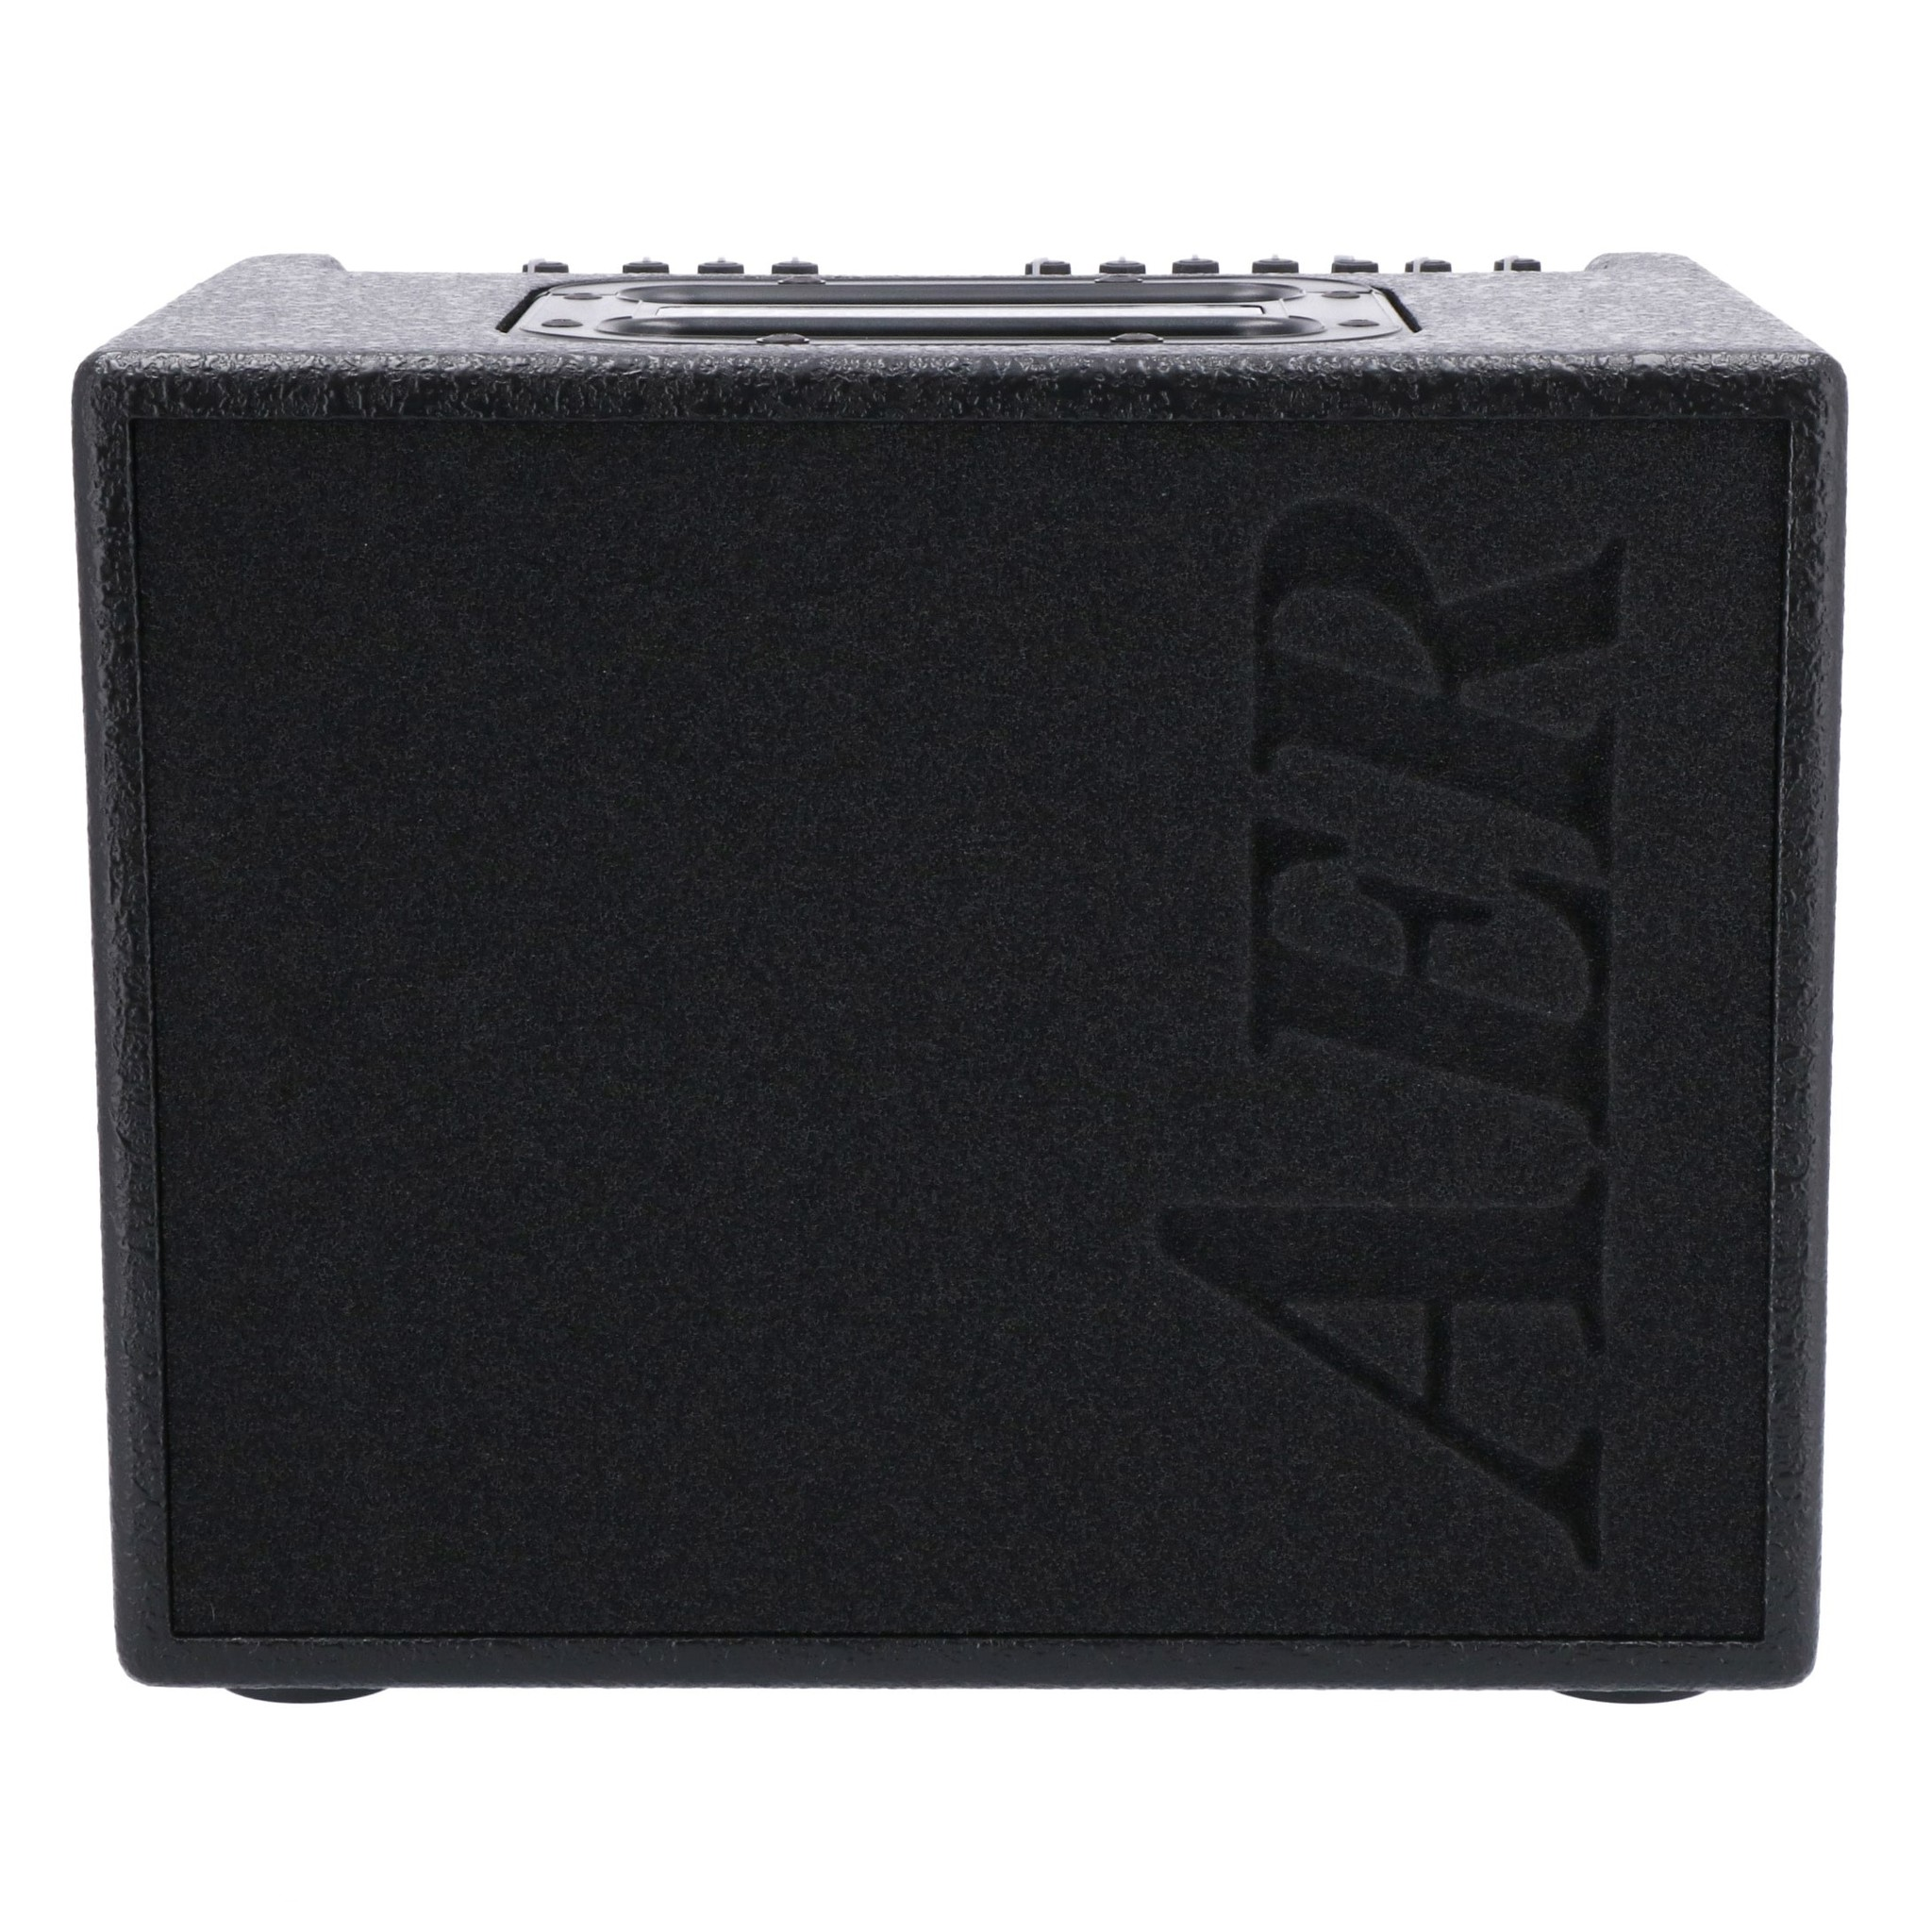 AER AER Compact 60/4 CPT Black Acoustic Amp